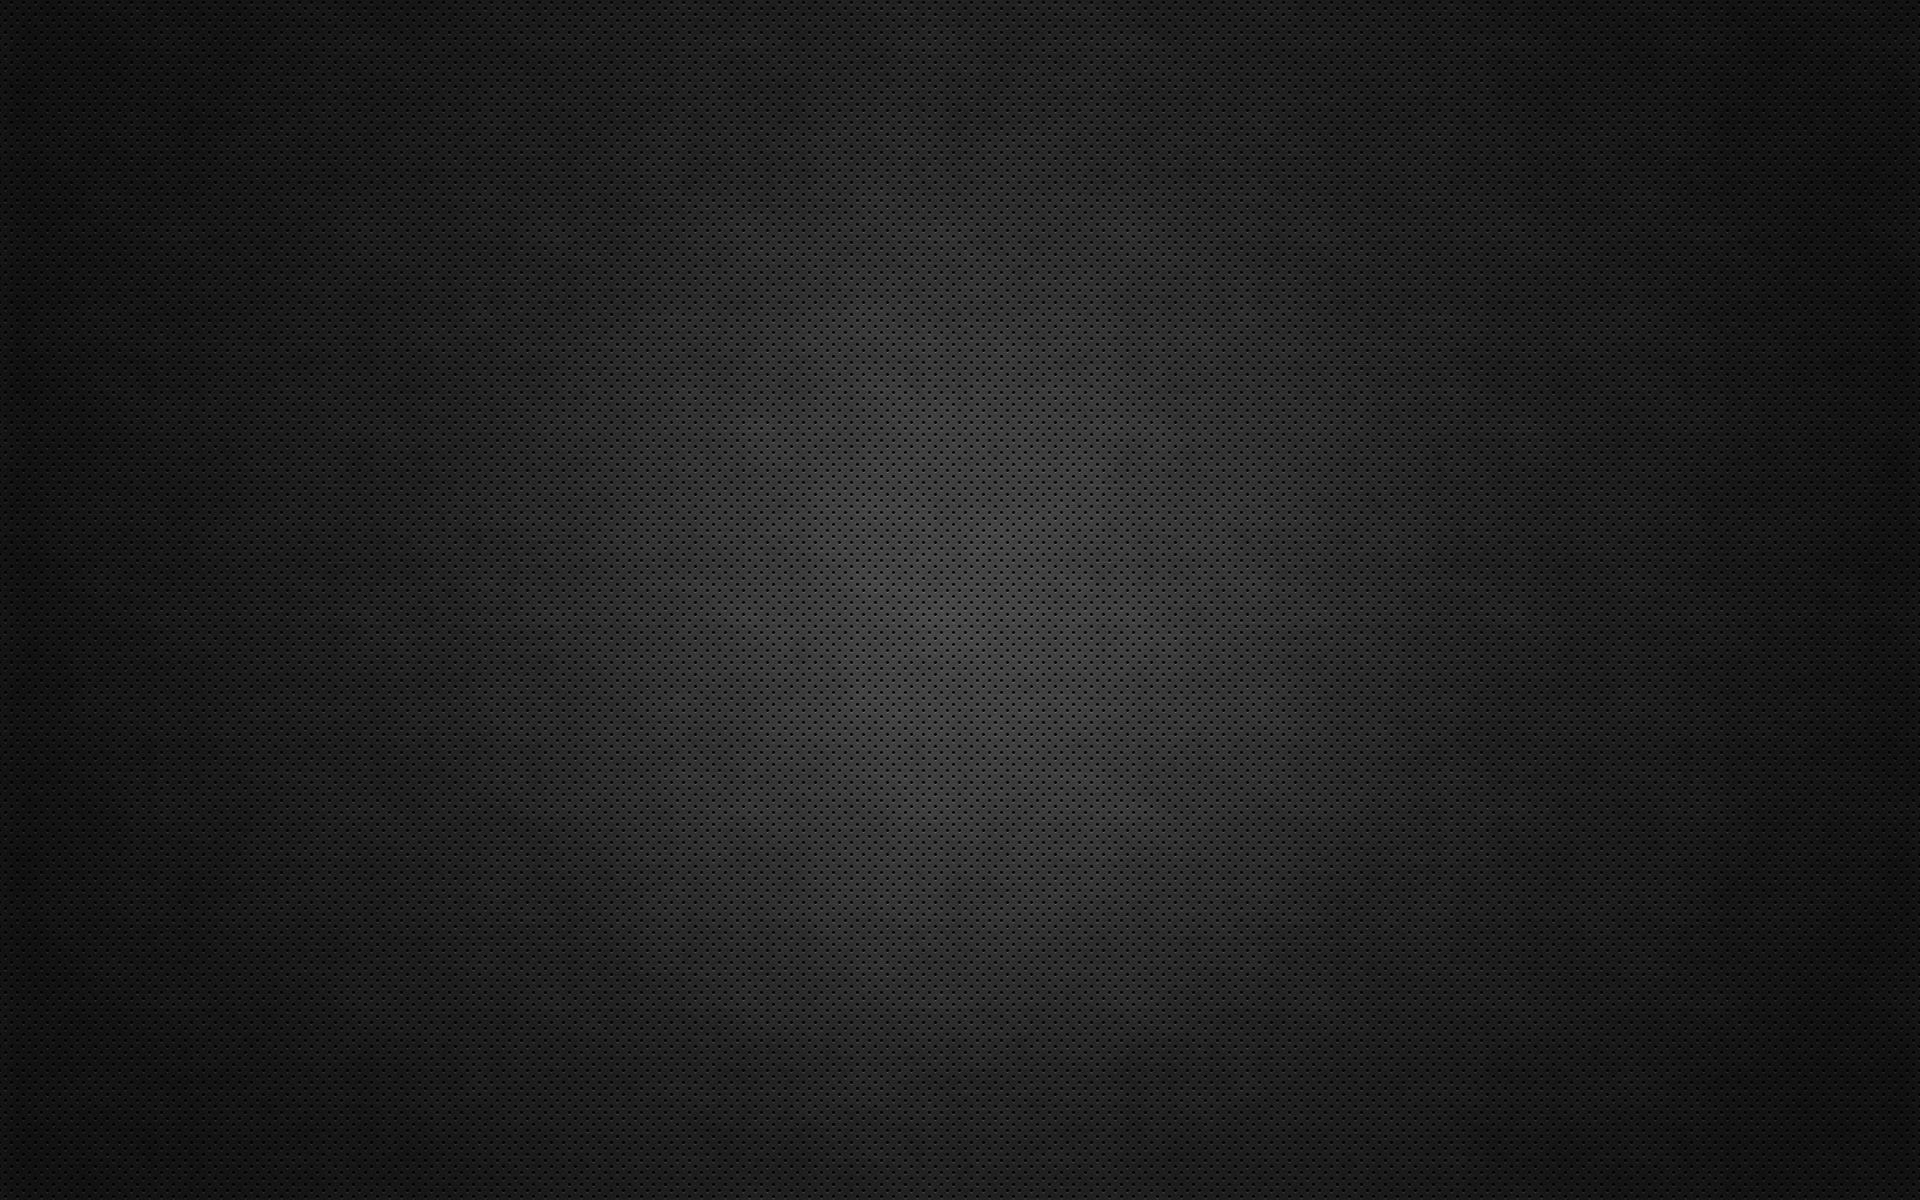 Black Metallic Wallpapers Top Free Black Metallic Backgrounds Wallpaperaccess